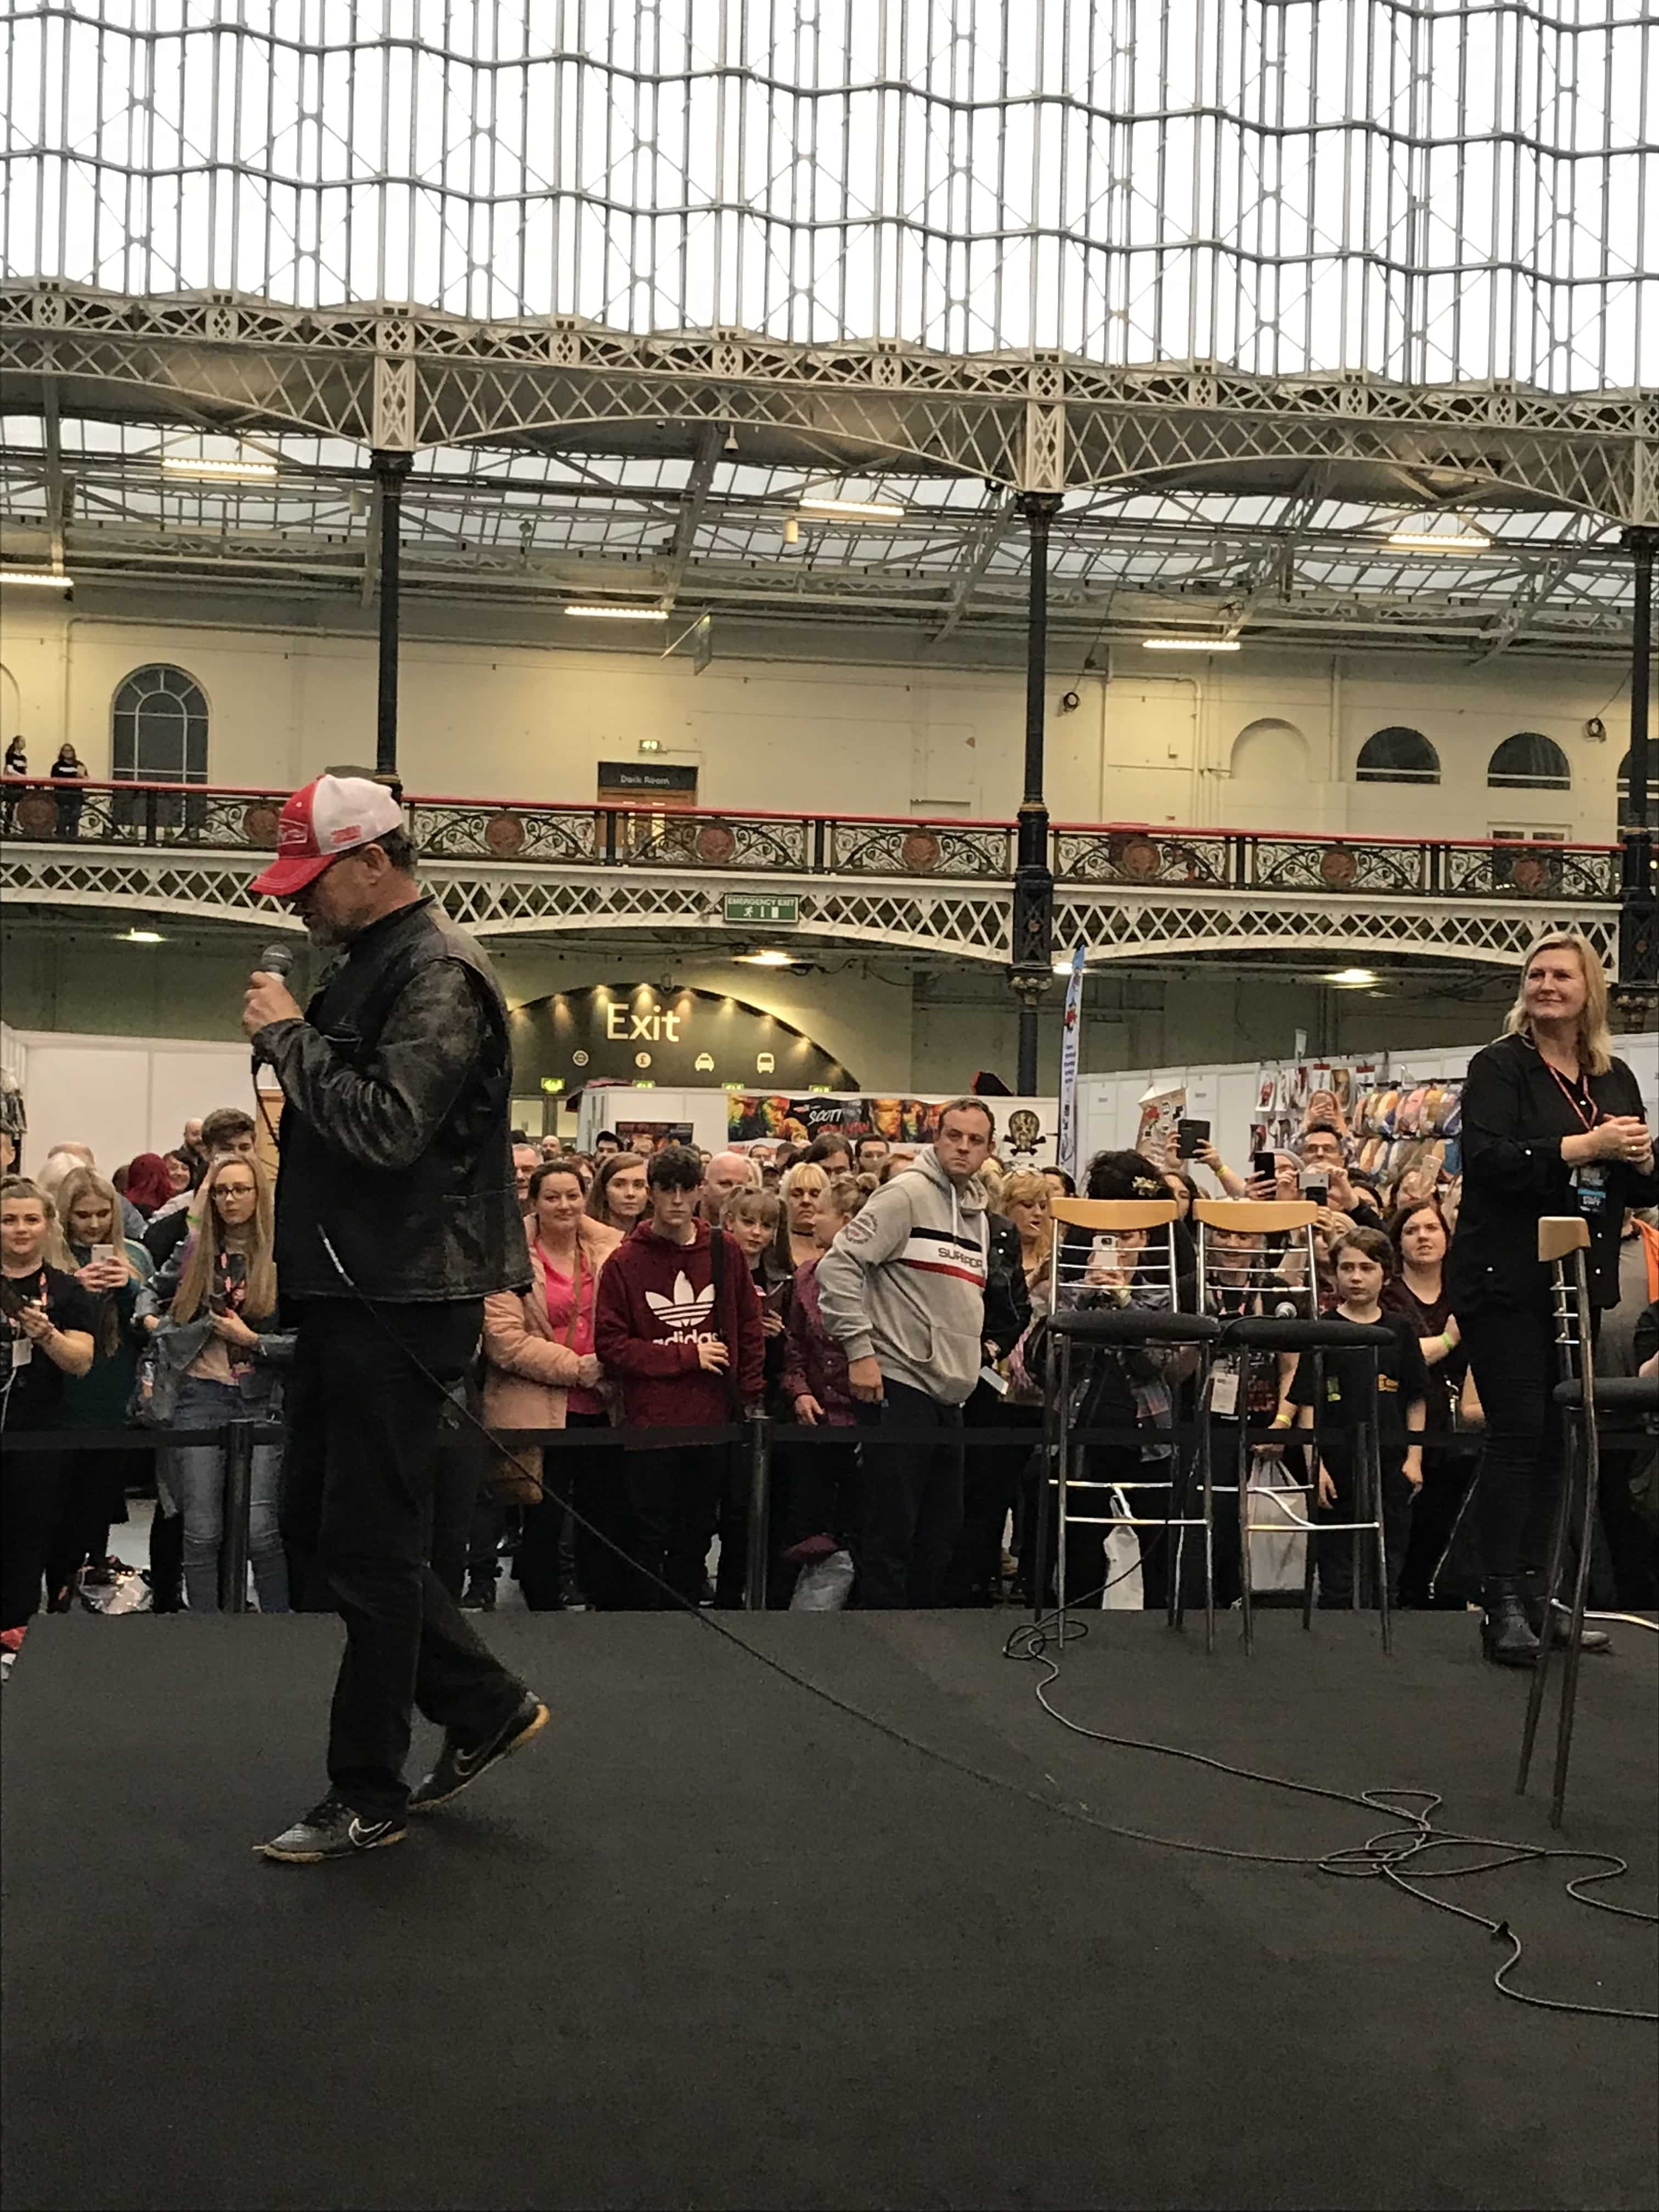 Source: TGON Jaimee Rindy // Michael Rooker (Merle on The Walking Dead) on the Live Stage